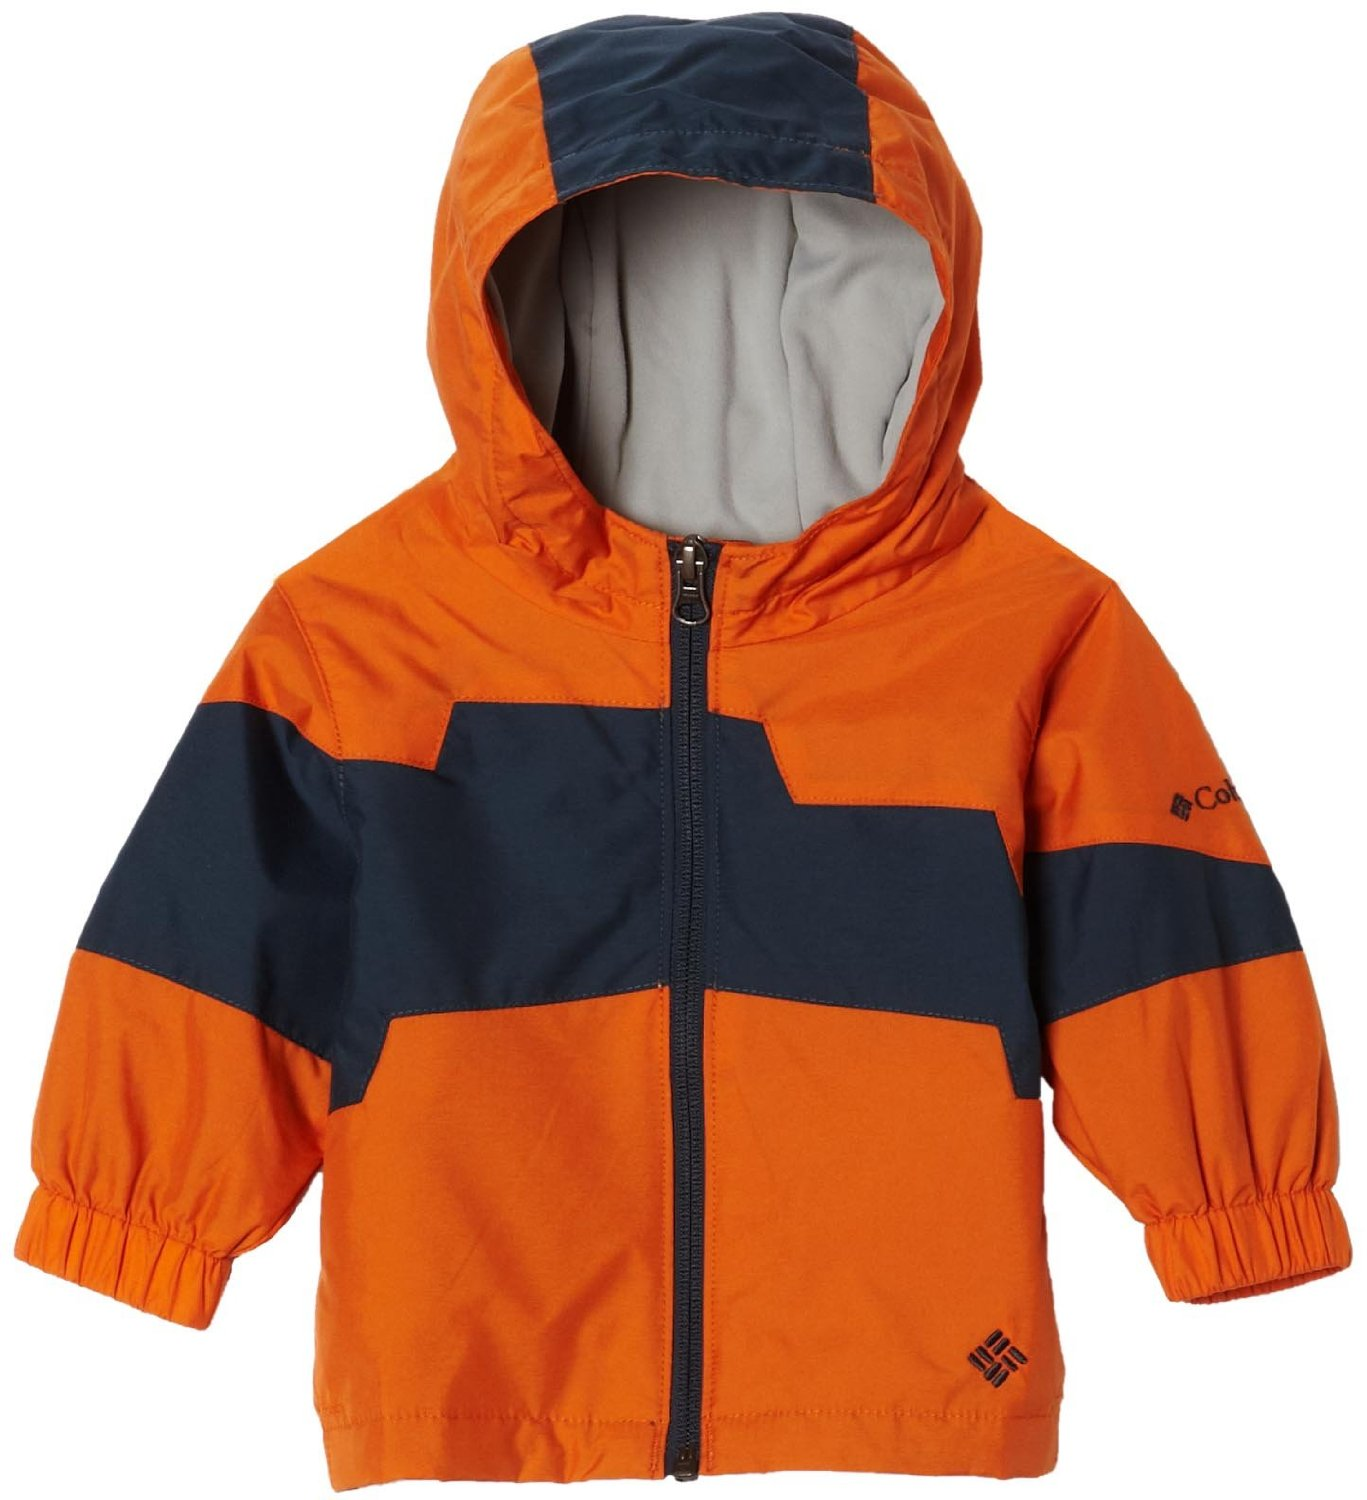 Find a great selection of kids' coats & jackets at trueiupnbp.gq Shop fleece jackets, raincoats, vests & more. Totally free shipping & returns.